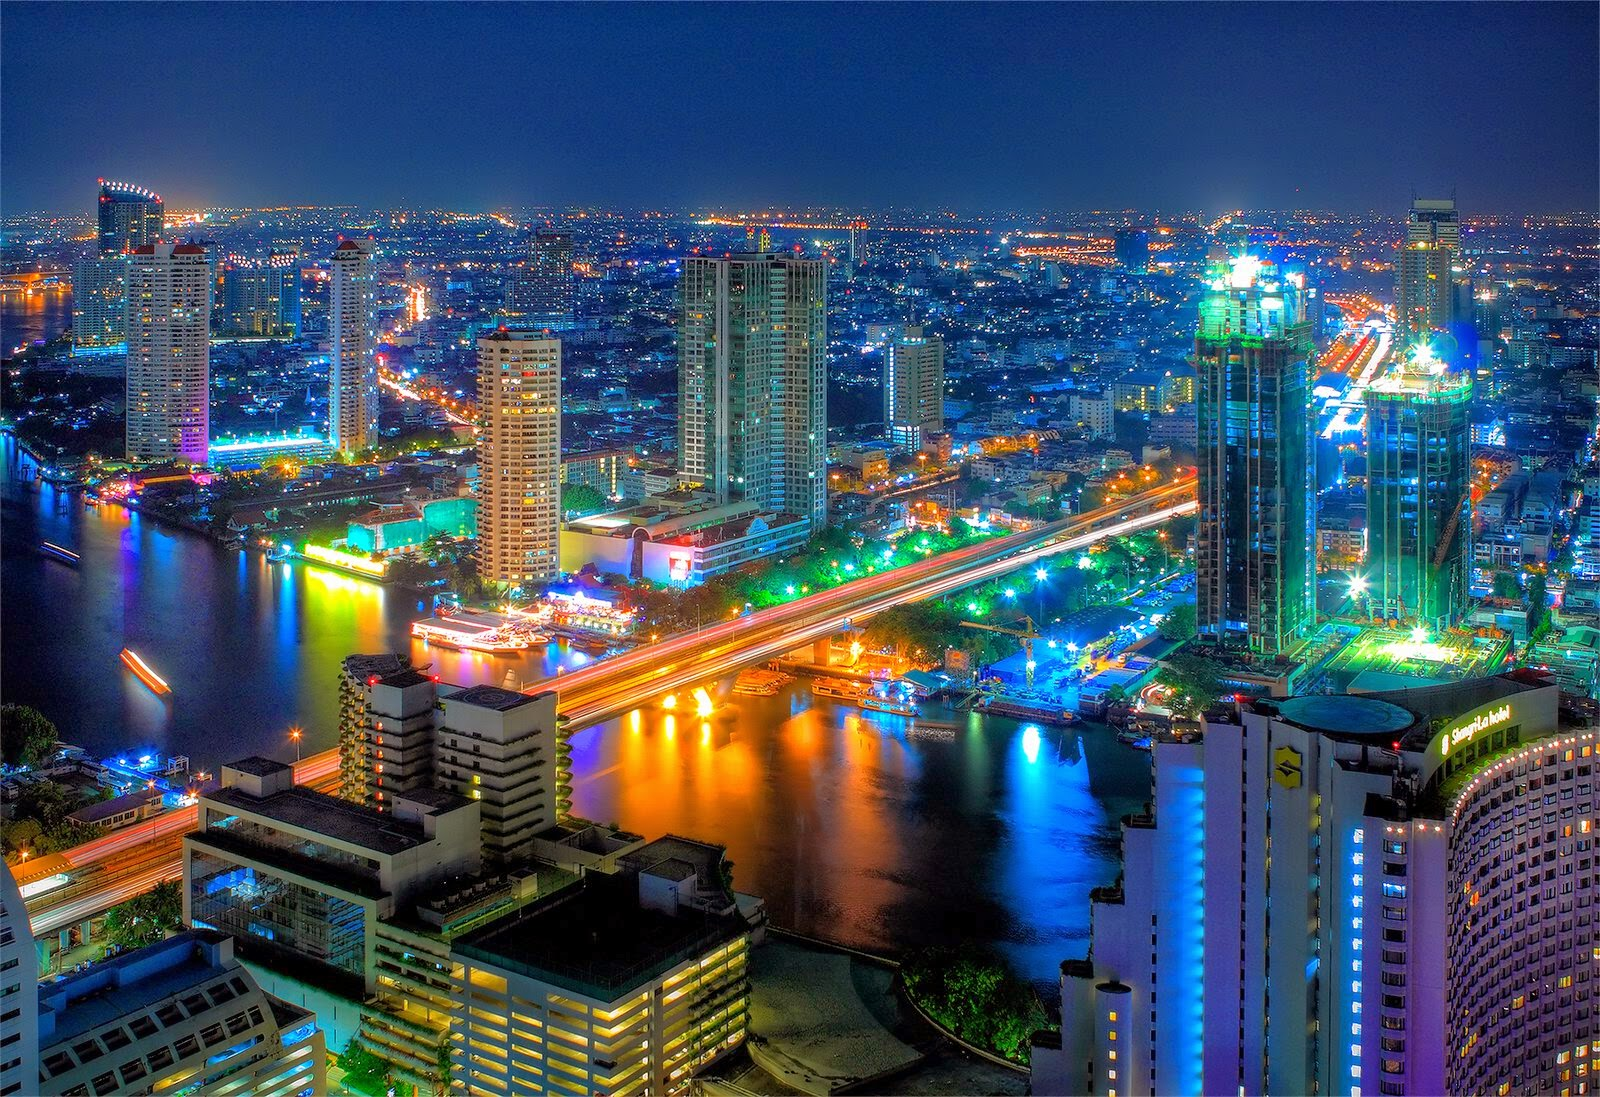 Cities of the world wallpapers hd part 10 bangkok milan for Thai wallpaper gallery